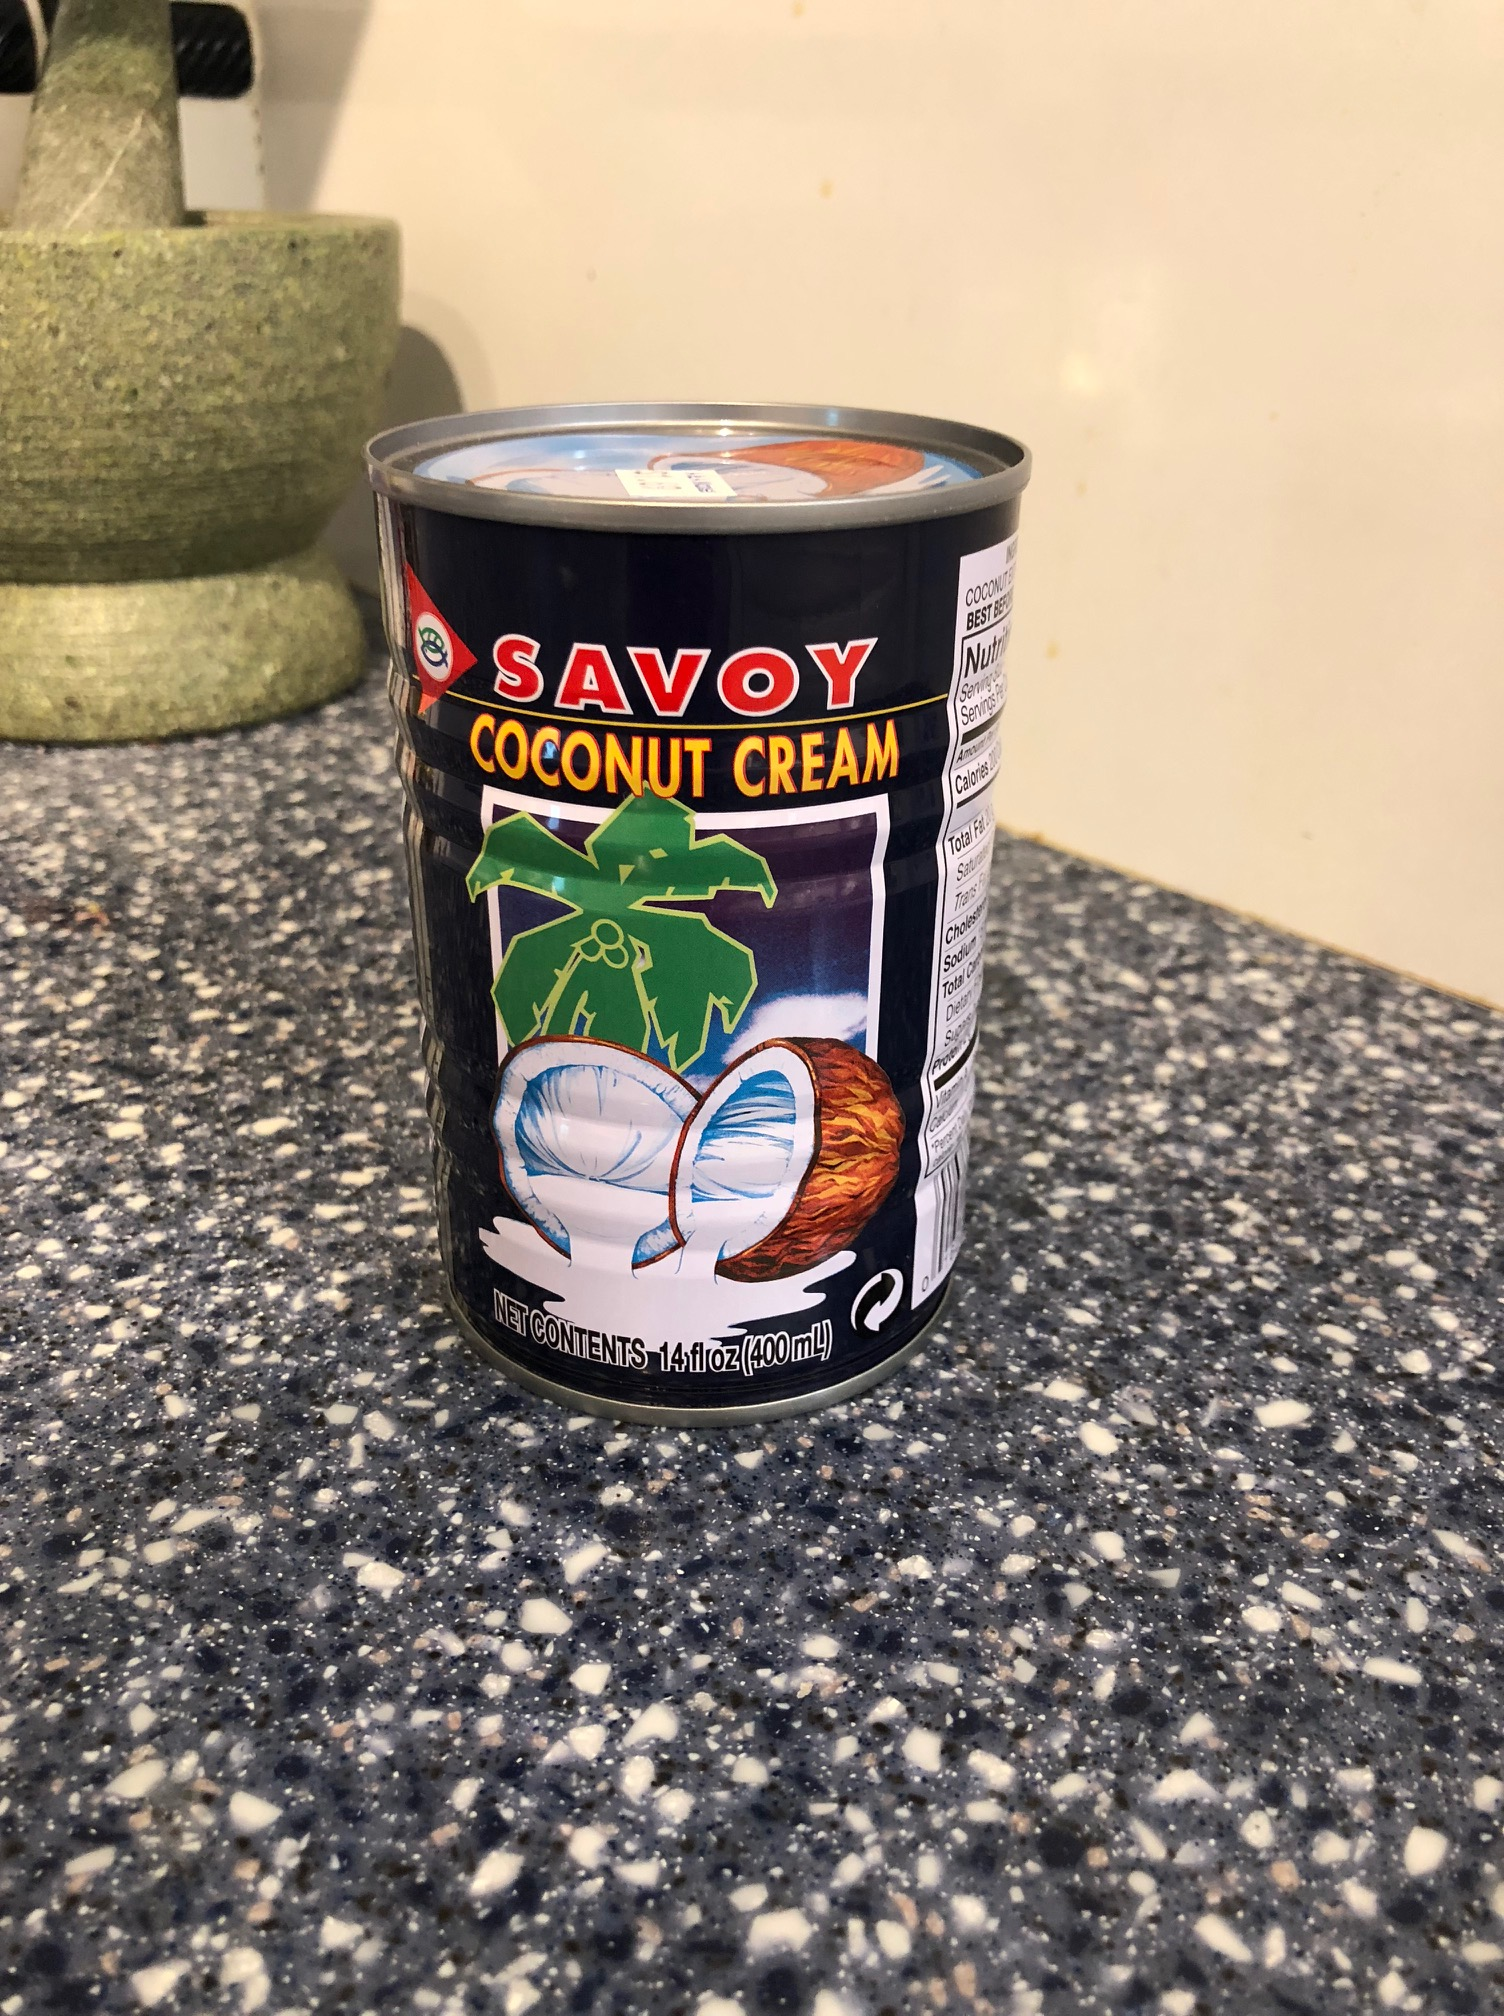 Can of Savoy Coconut Cream